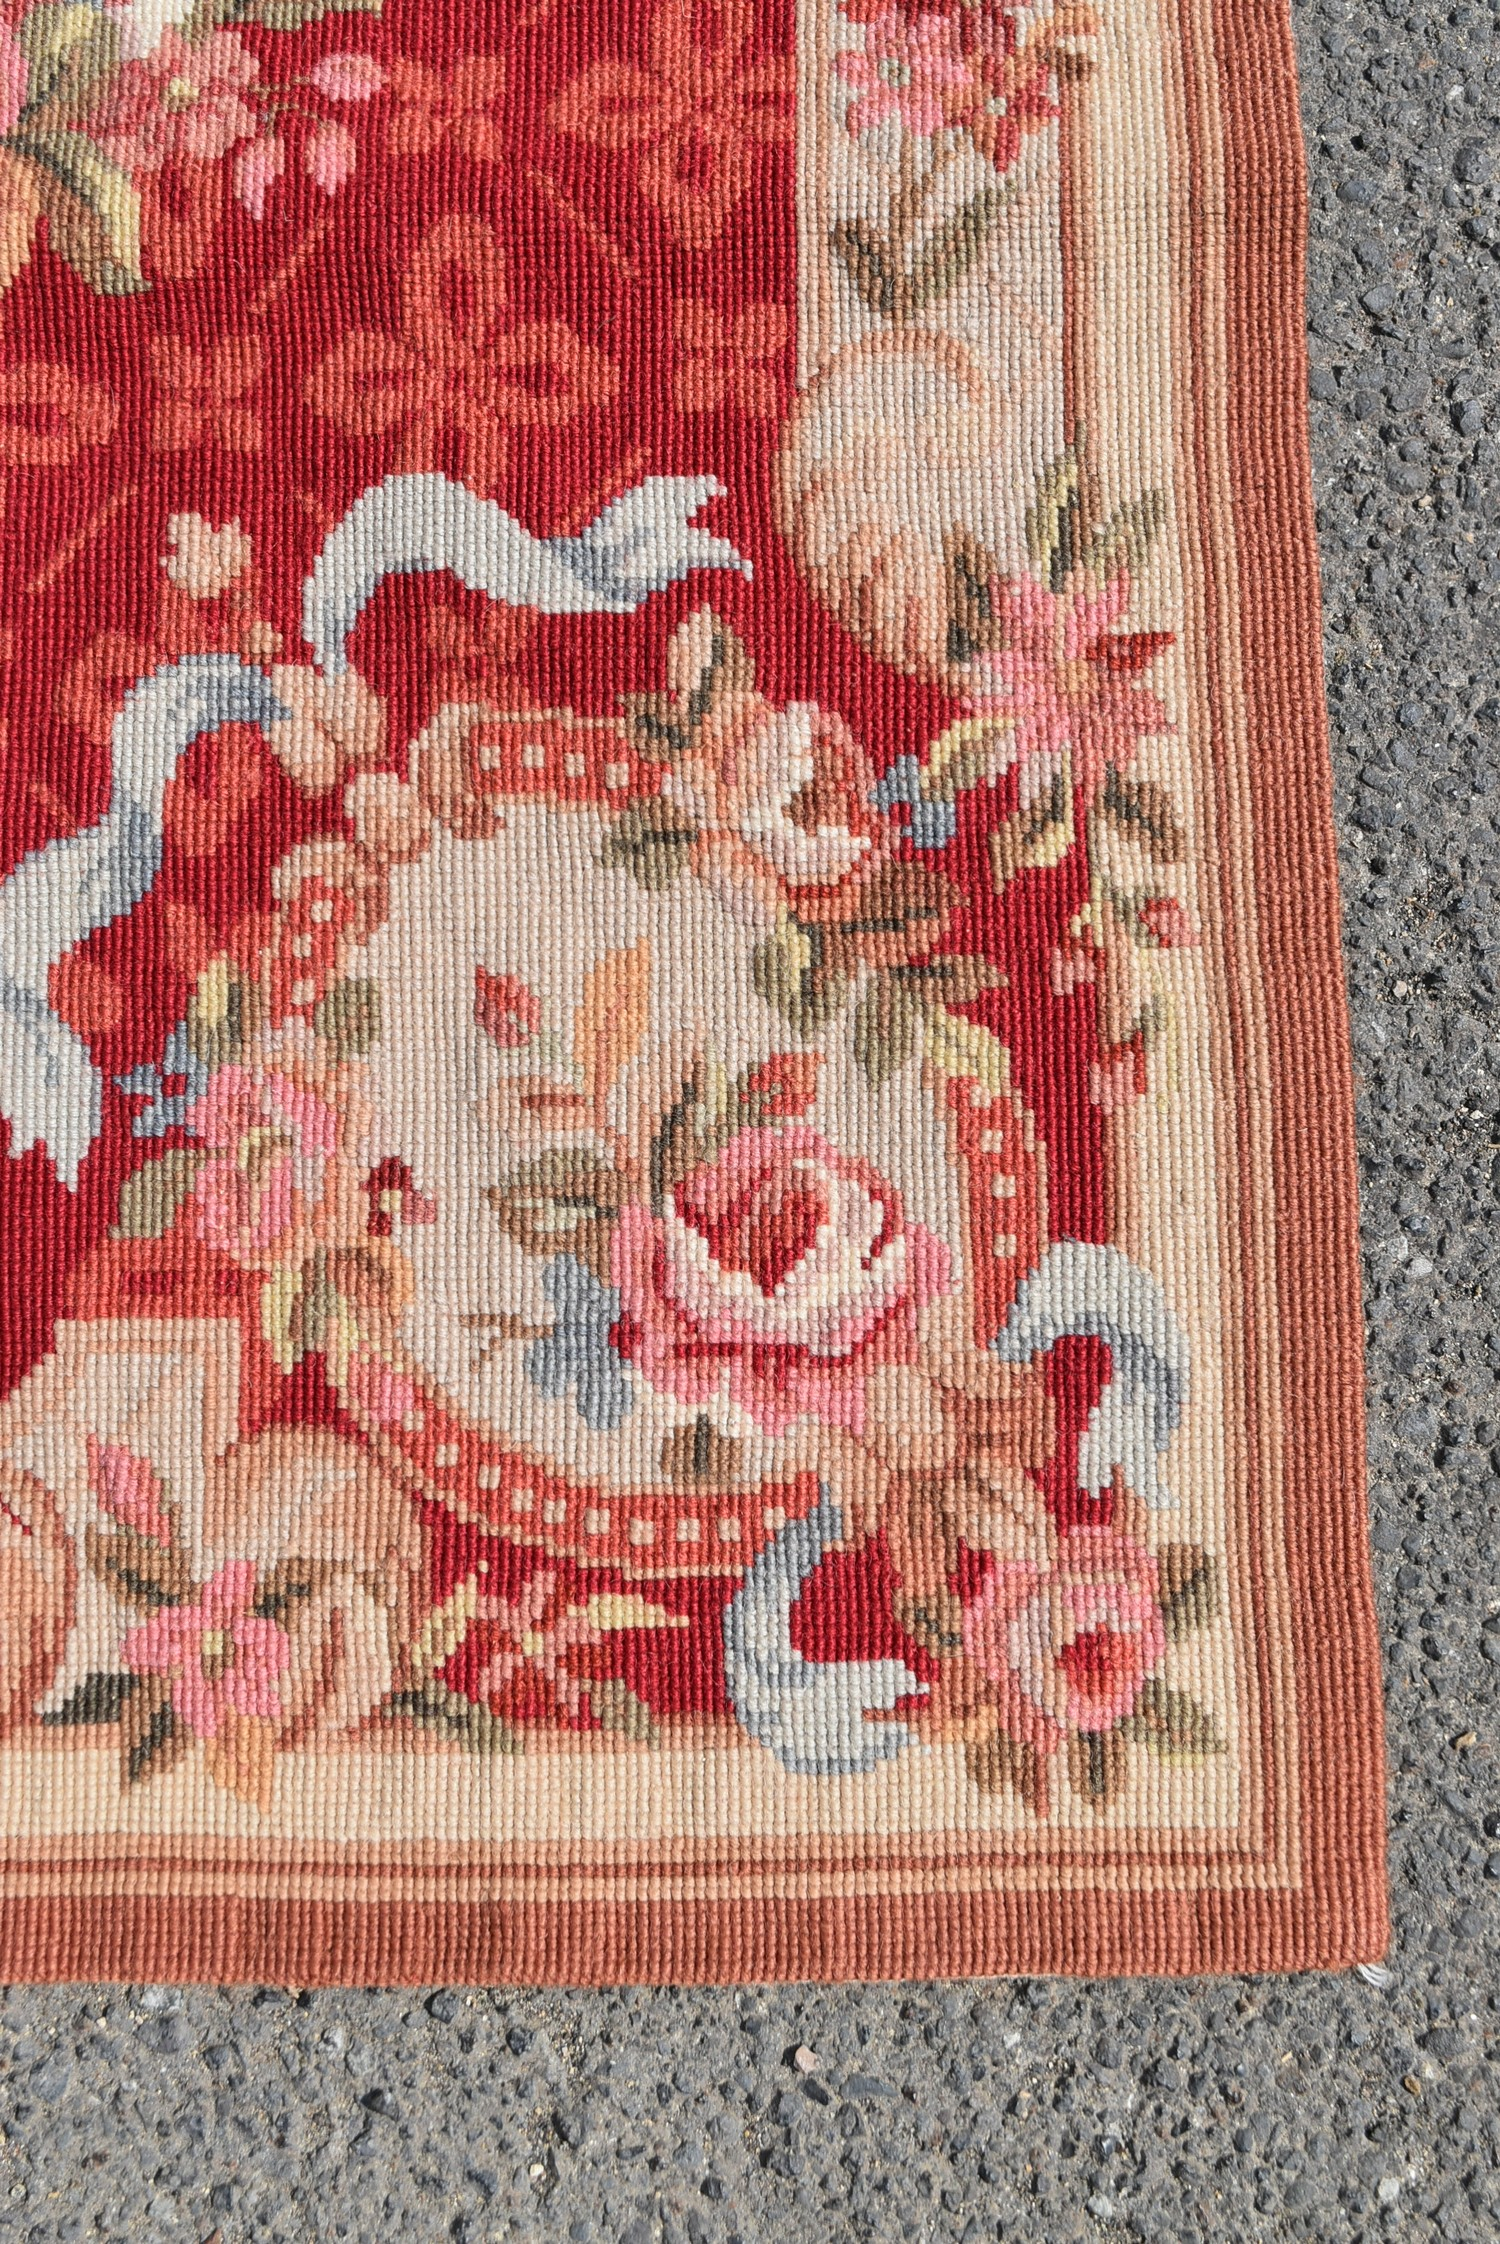 A needlepoint rug with central floral cartouche on a burgundy field within ribbon and flowerhead - Image 3 of 4